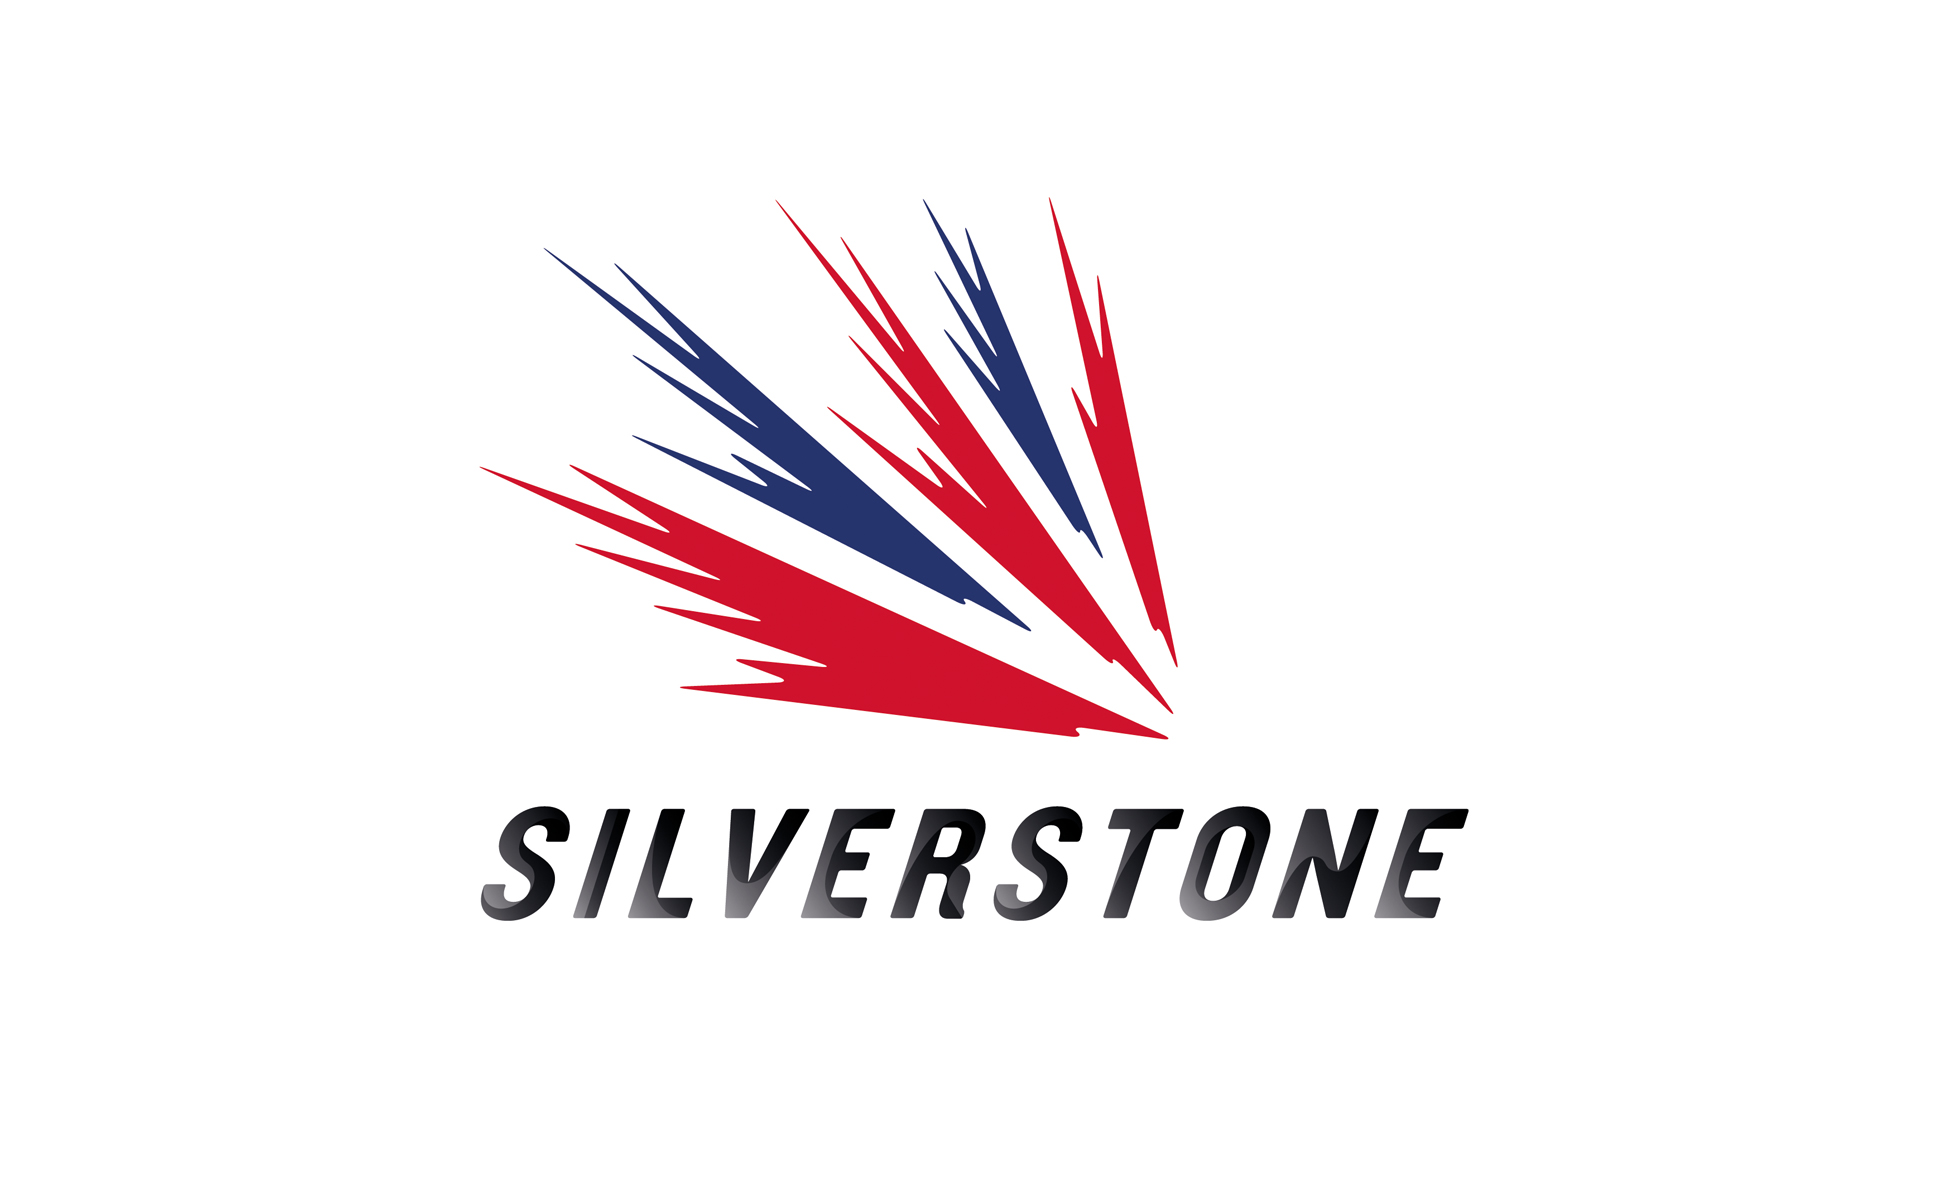 Silverstone - Race Circuit Rebrand by DS Emotion